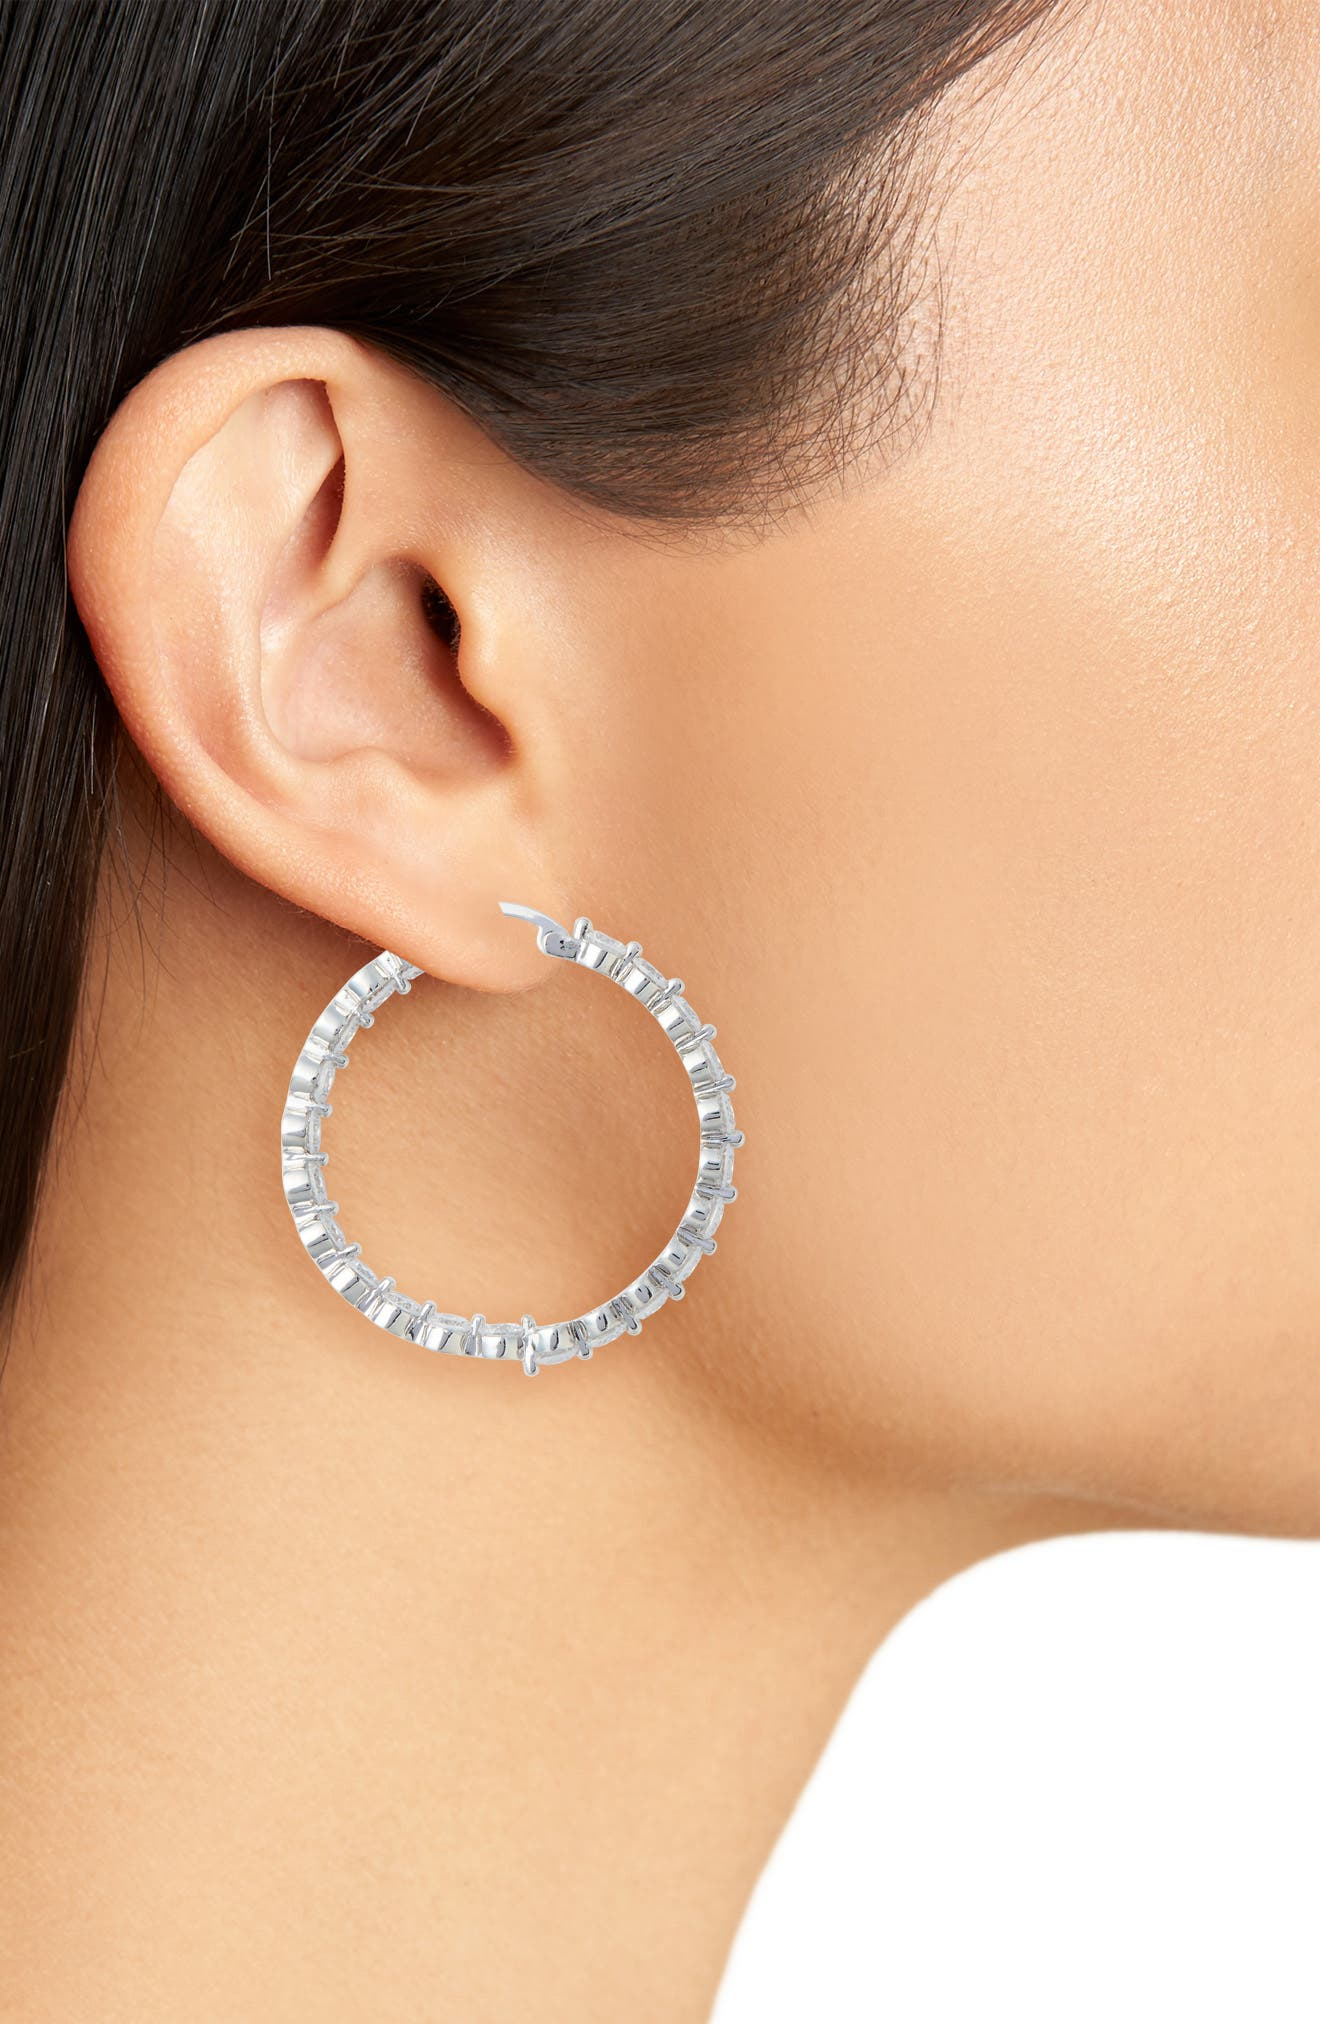 Large Cubic Zirconia Hoop Earrings.,                             Alternate thumbnail 2, color,                             Silver/ White Cz